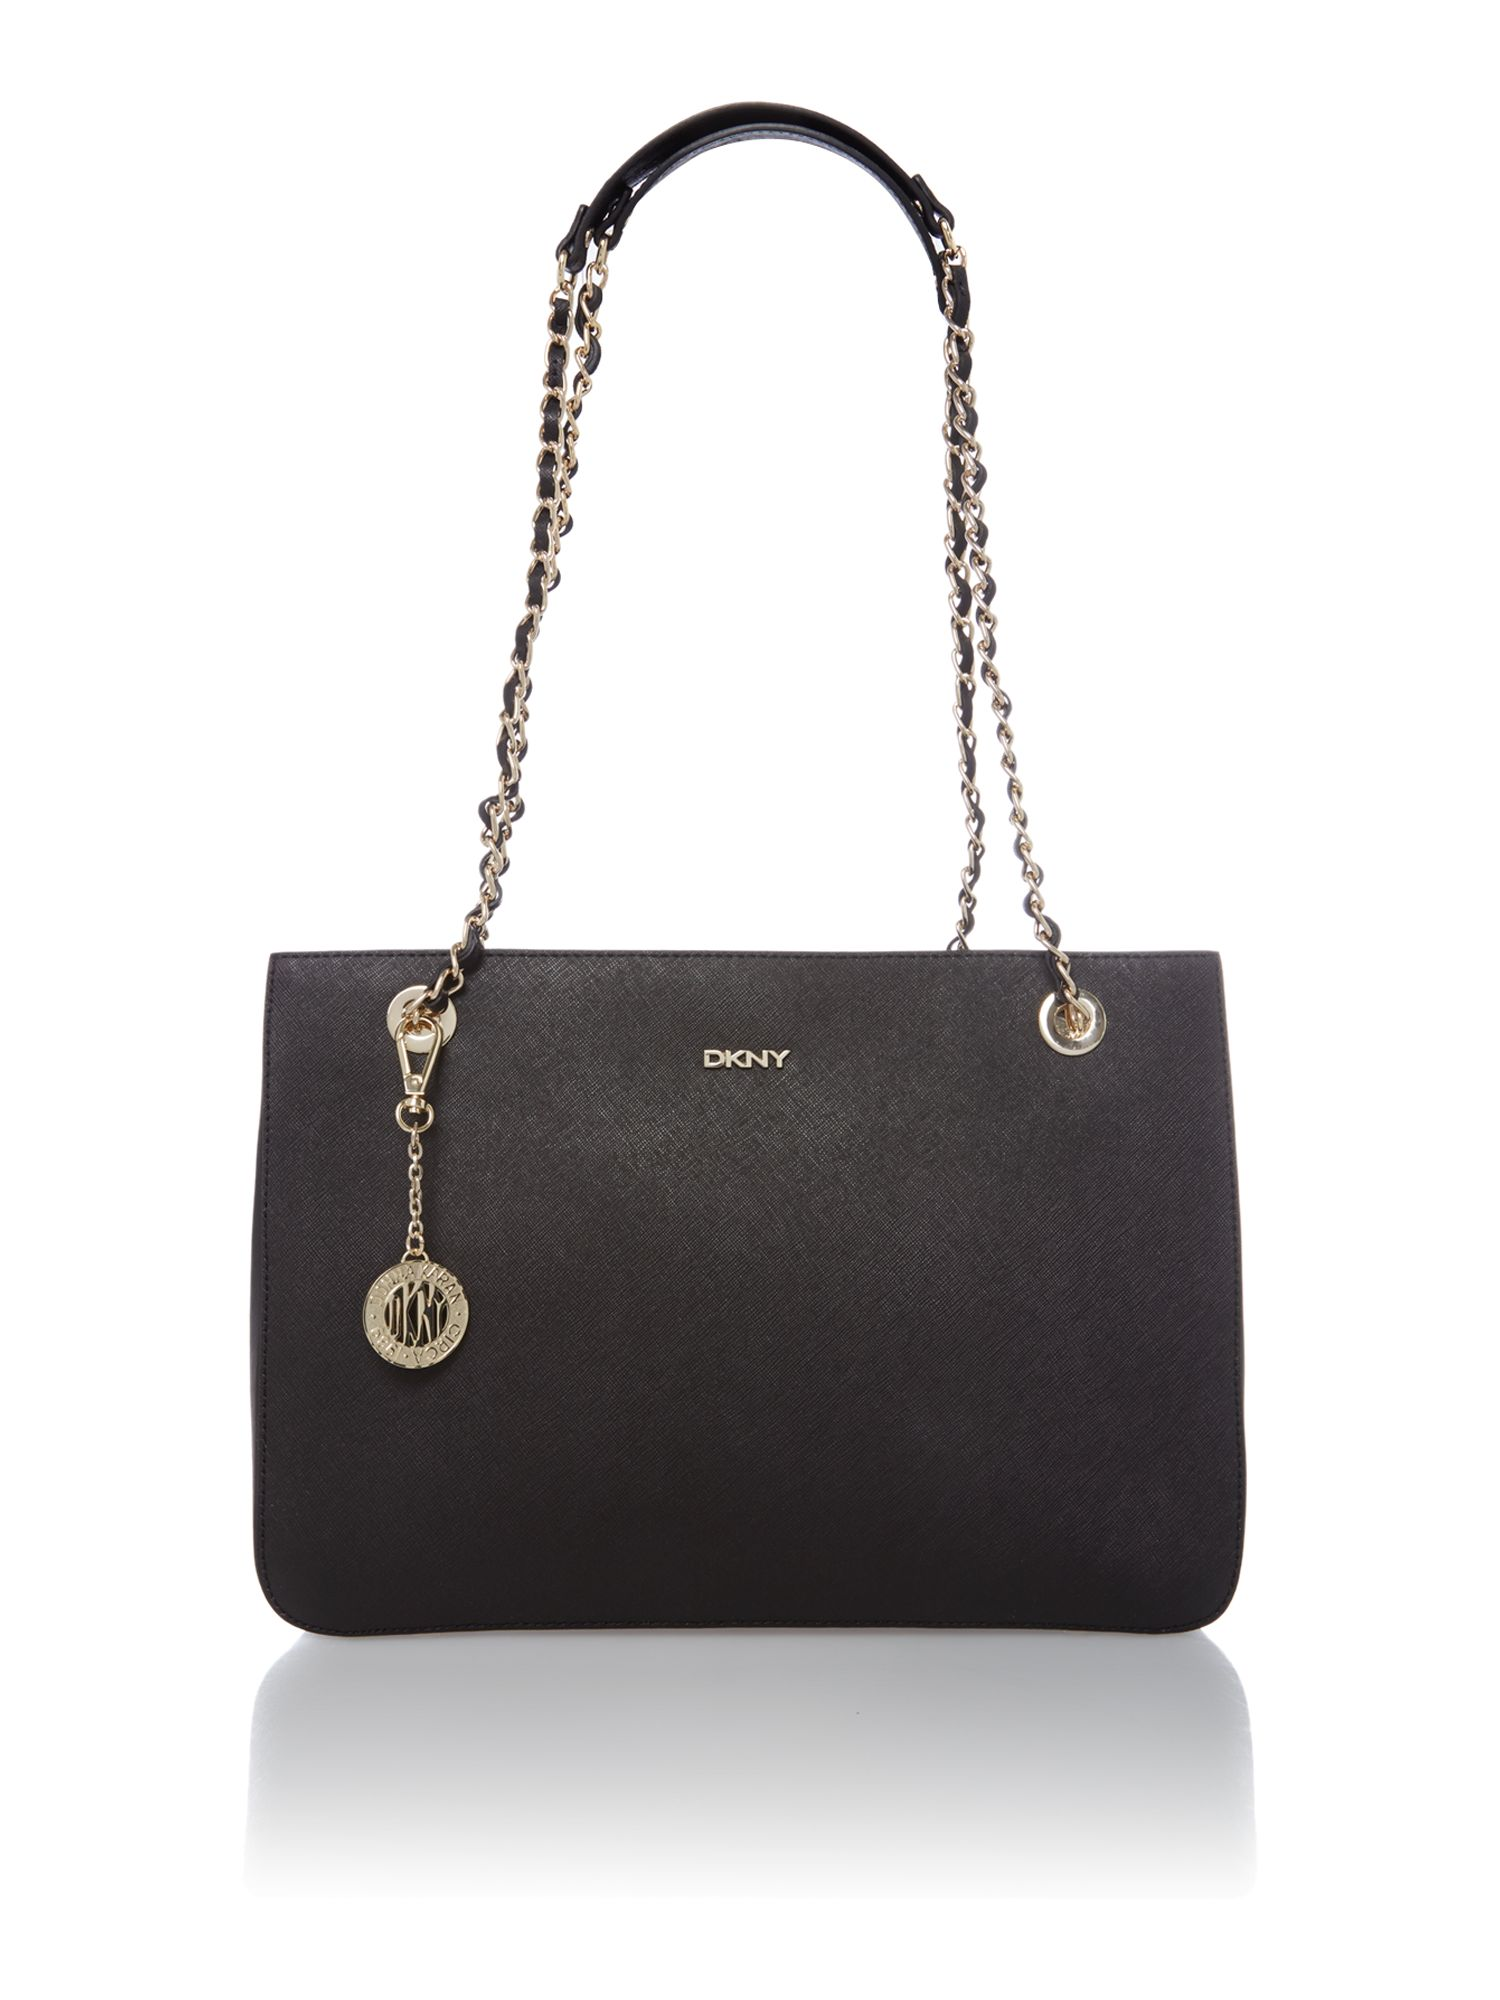 Saffiano black medium tote bag